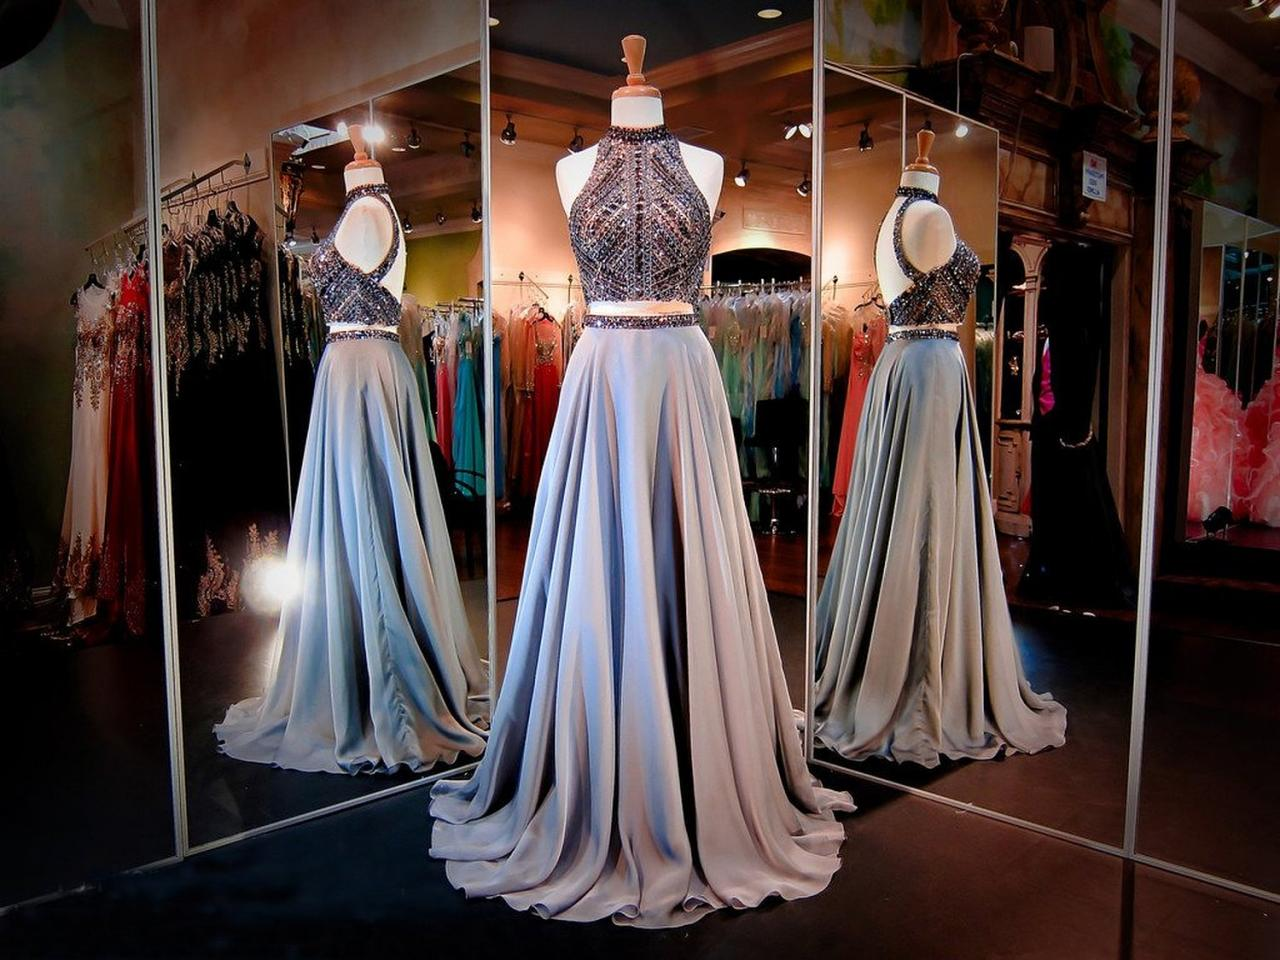 A-Line Prom Dresses Women's Halter Crystals Sequins Beaded Open Back Two Pieces Long Prom Dress Party Dresses,2018 Sparkly Crystal Long Evening Dress, Long Graduation Gowns